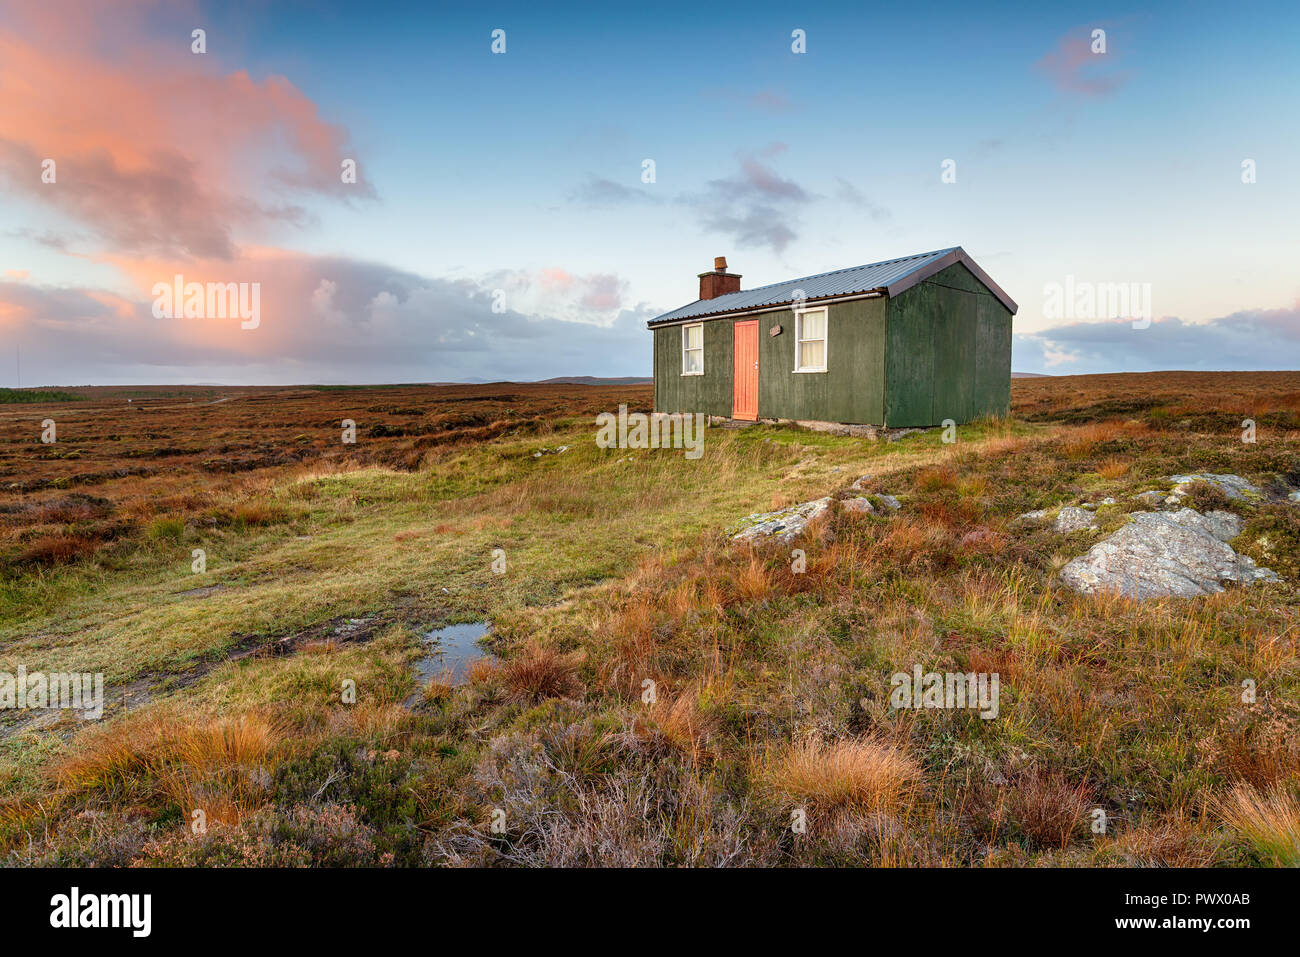 A tiny cottage or hut known as a shieling which is used for shelter while pasturing animals, on peat bog near Stornoway on the Isle of Lewis in Scotla Stock Photo